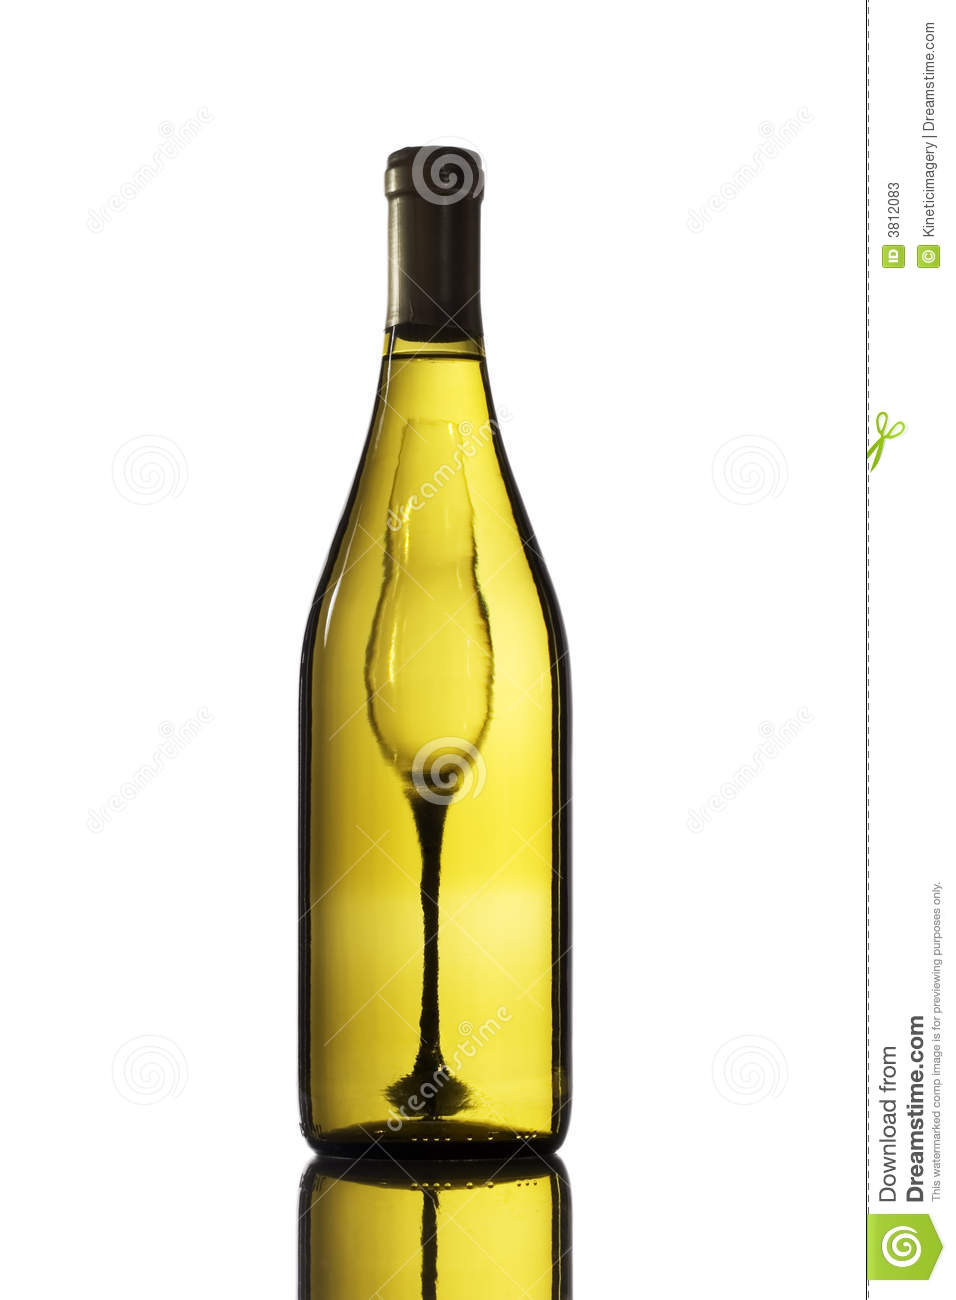 White wine bottle and glass stock photos image 3812083 for Wine bottle glass